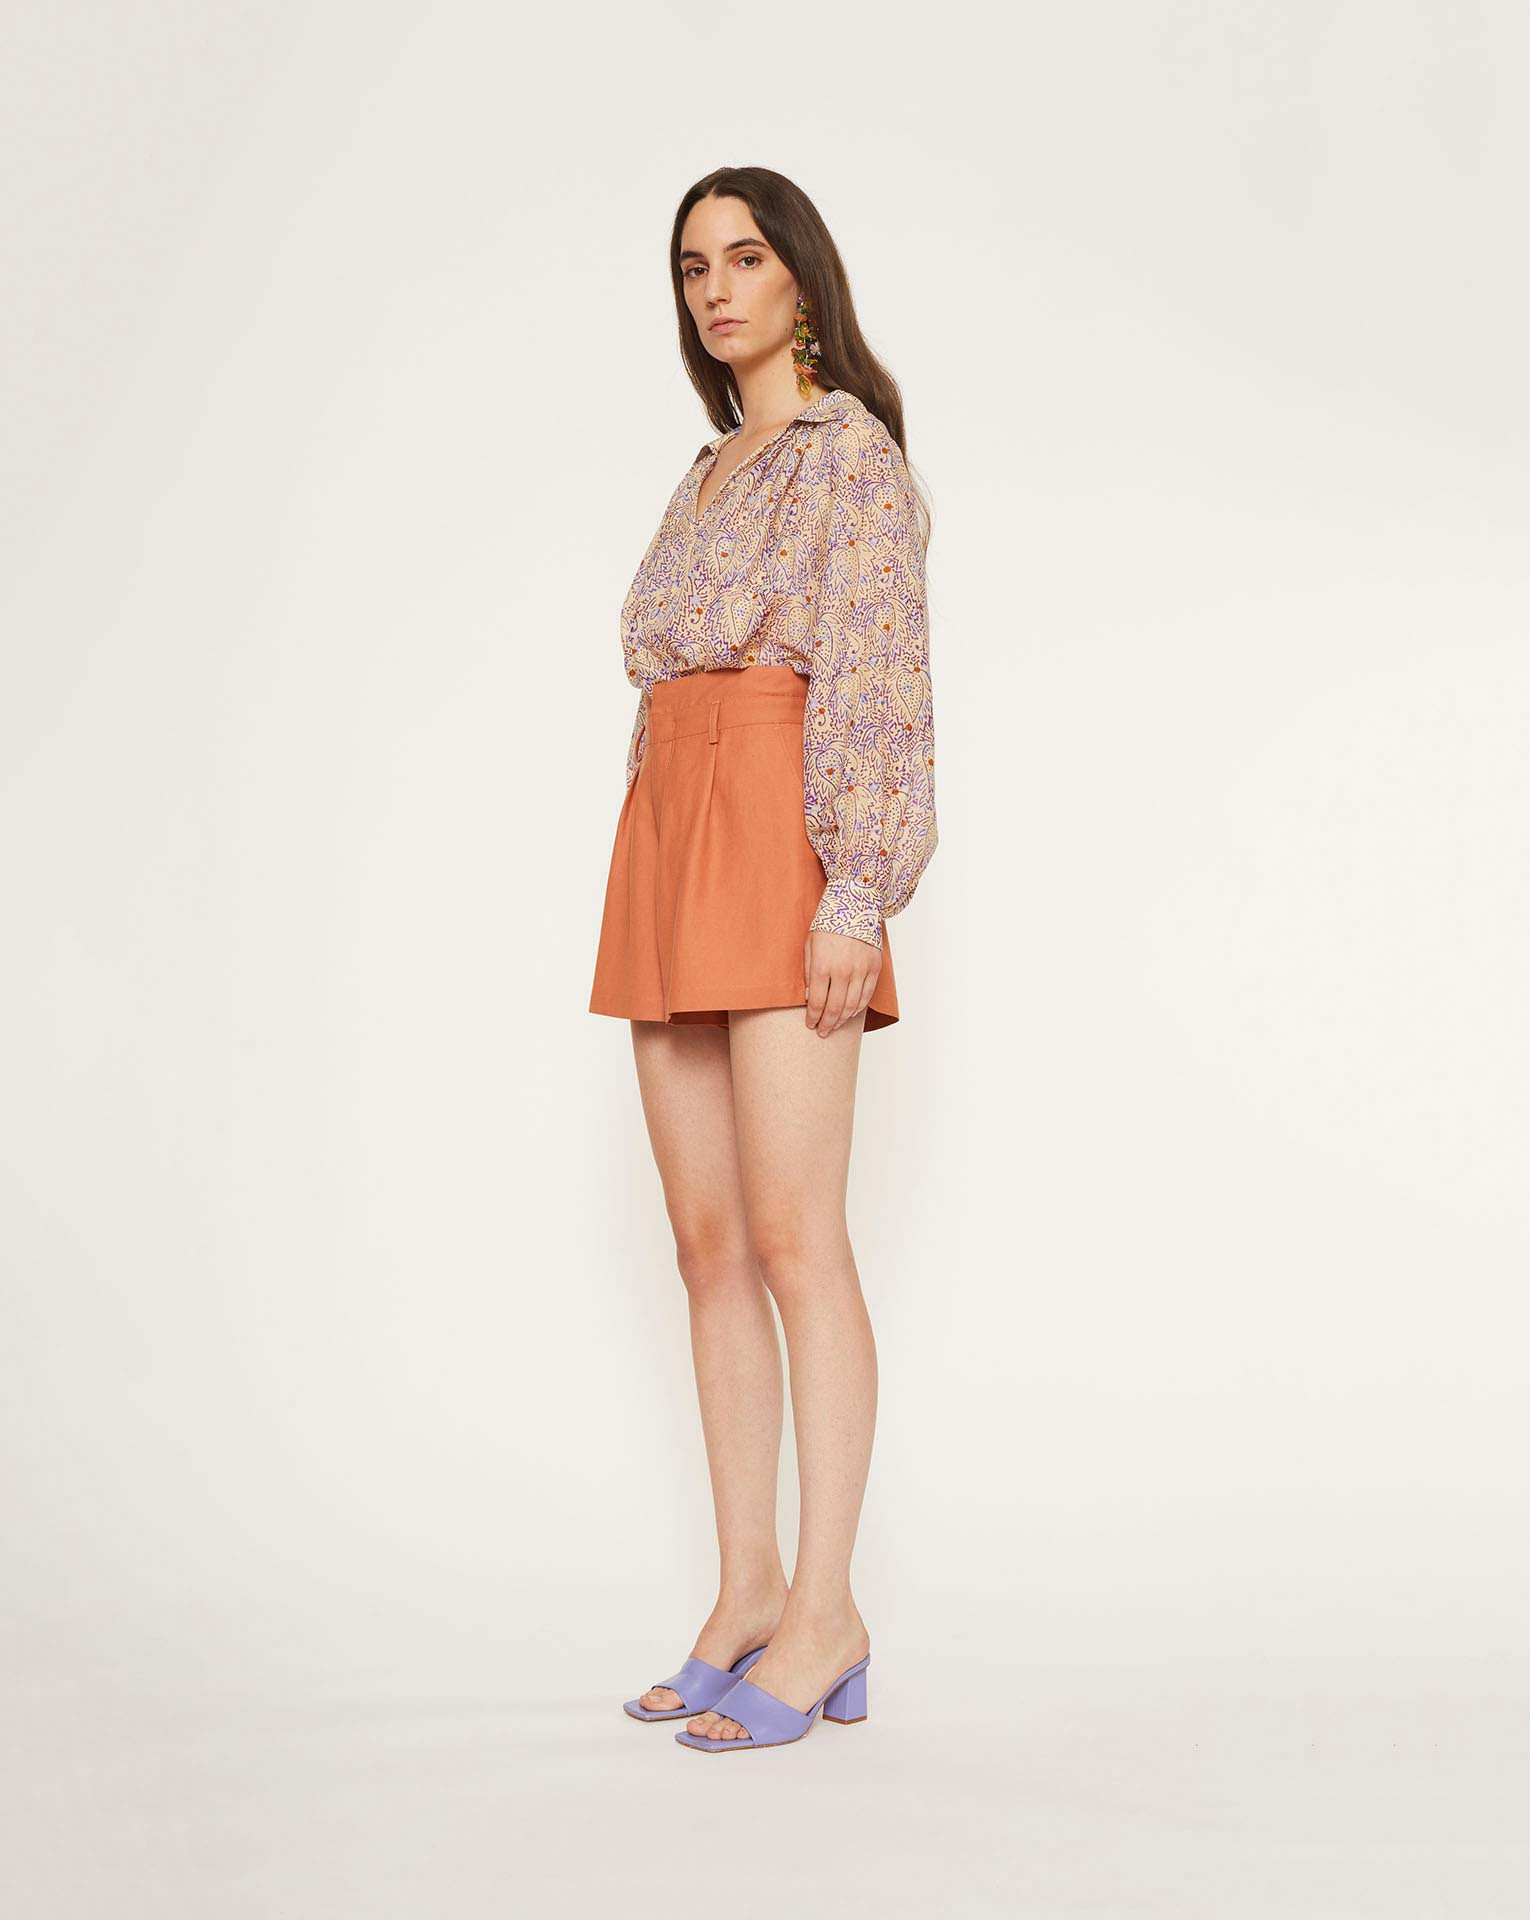 Shorts in shantung Ginger, Marrone, large image number 1